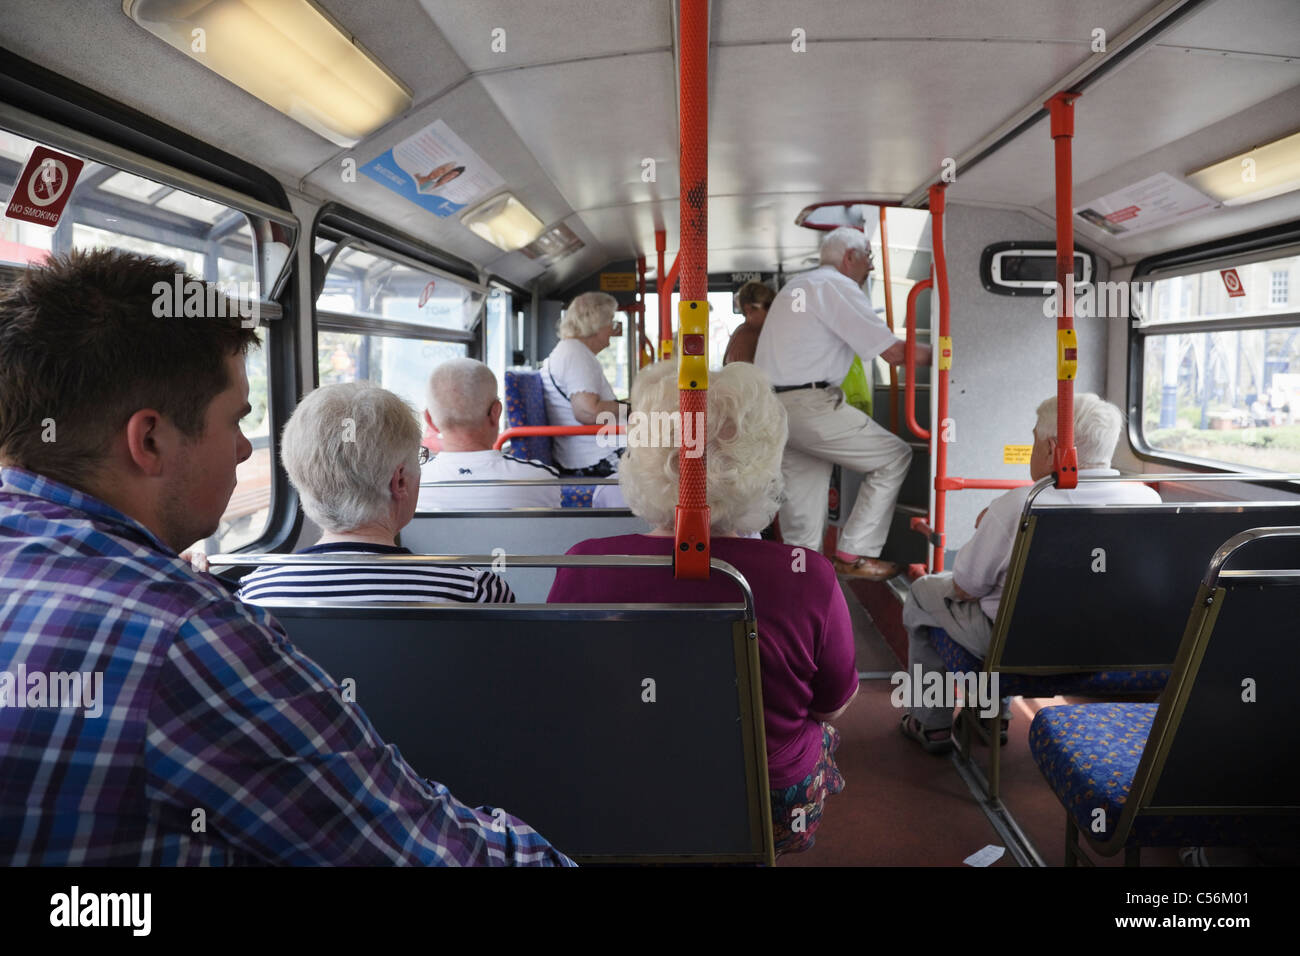 People passengers using public transport travelling on a local bus. England, UK, Britain - Stock Image